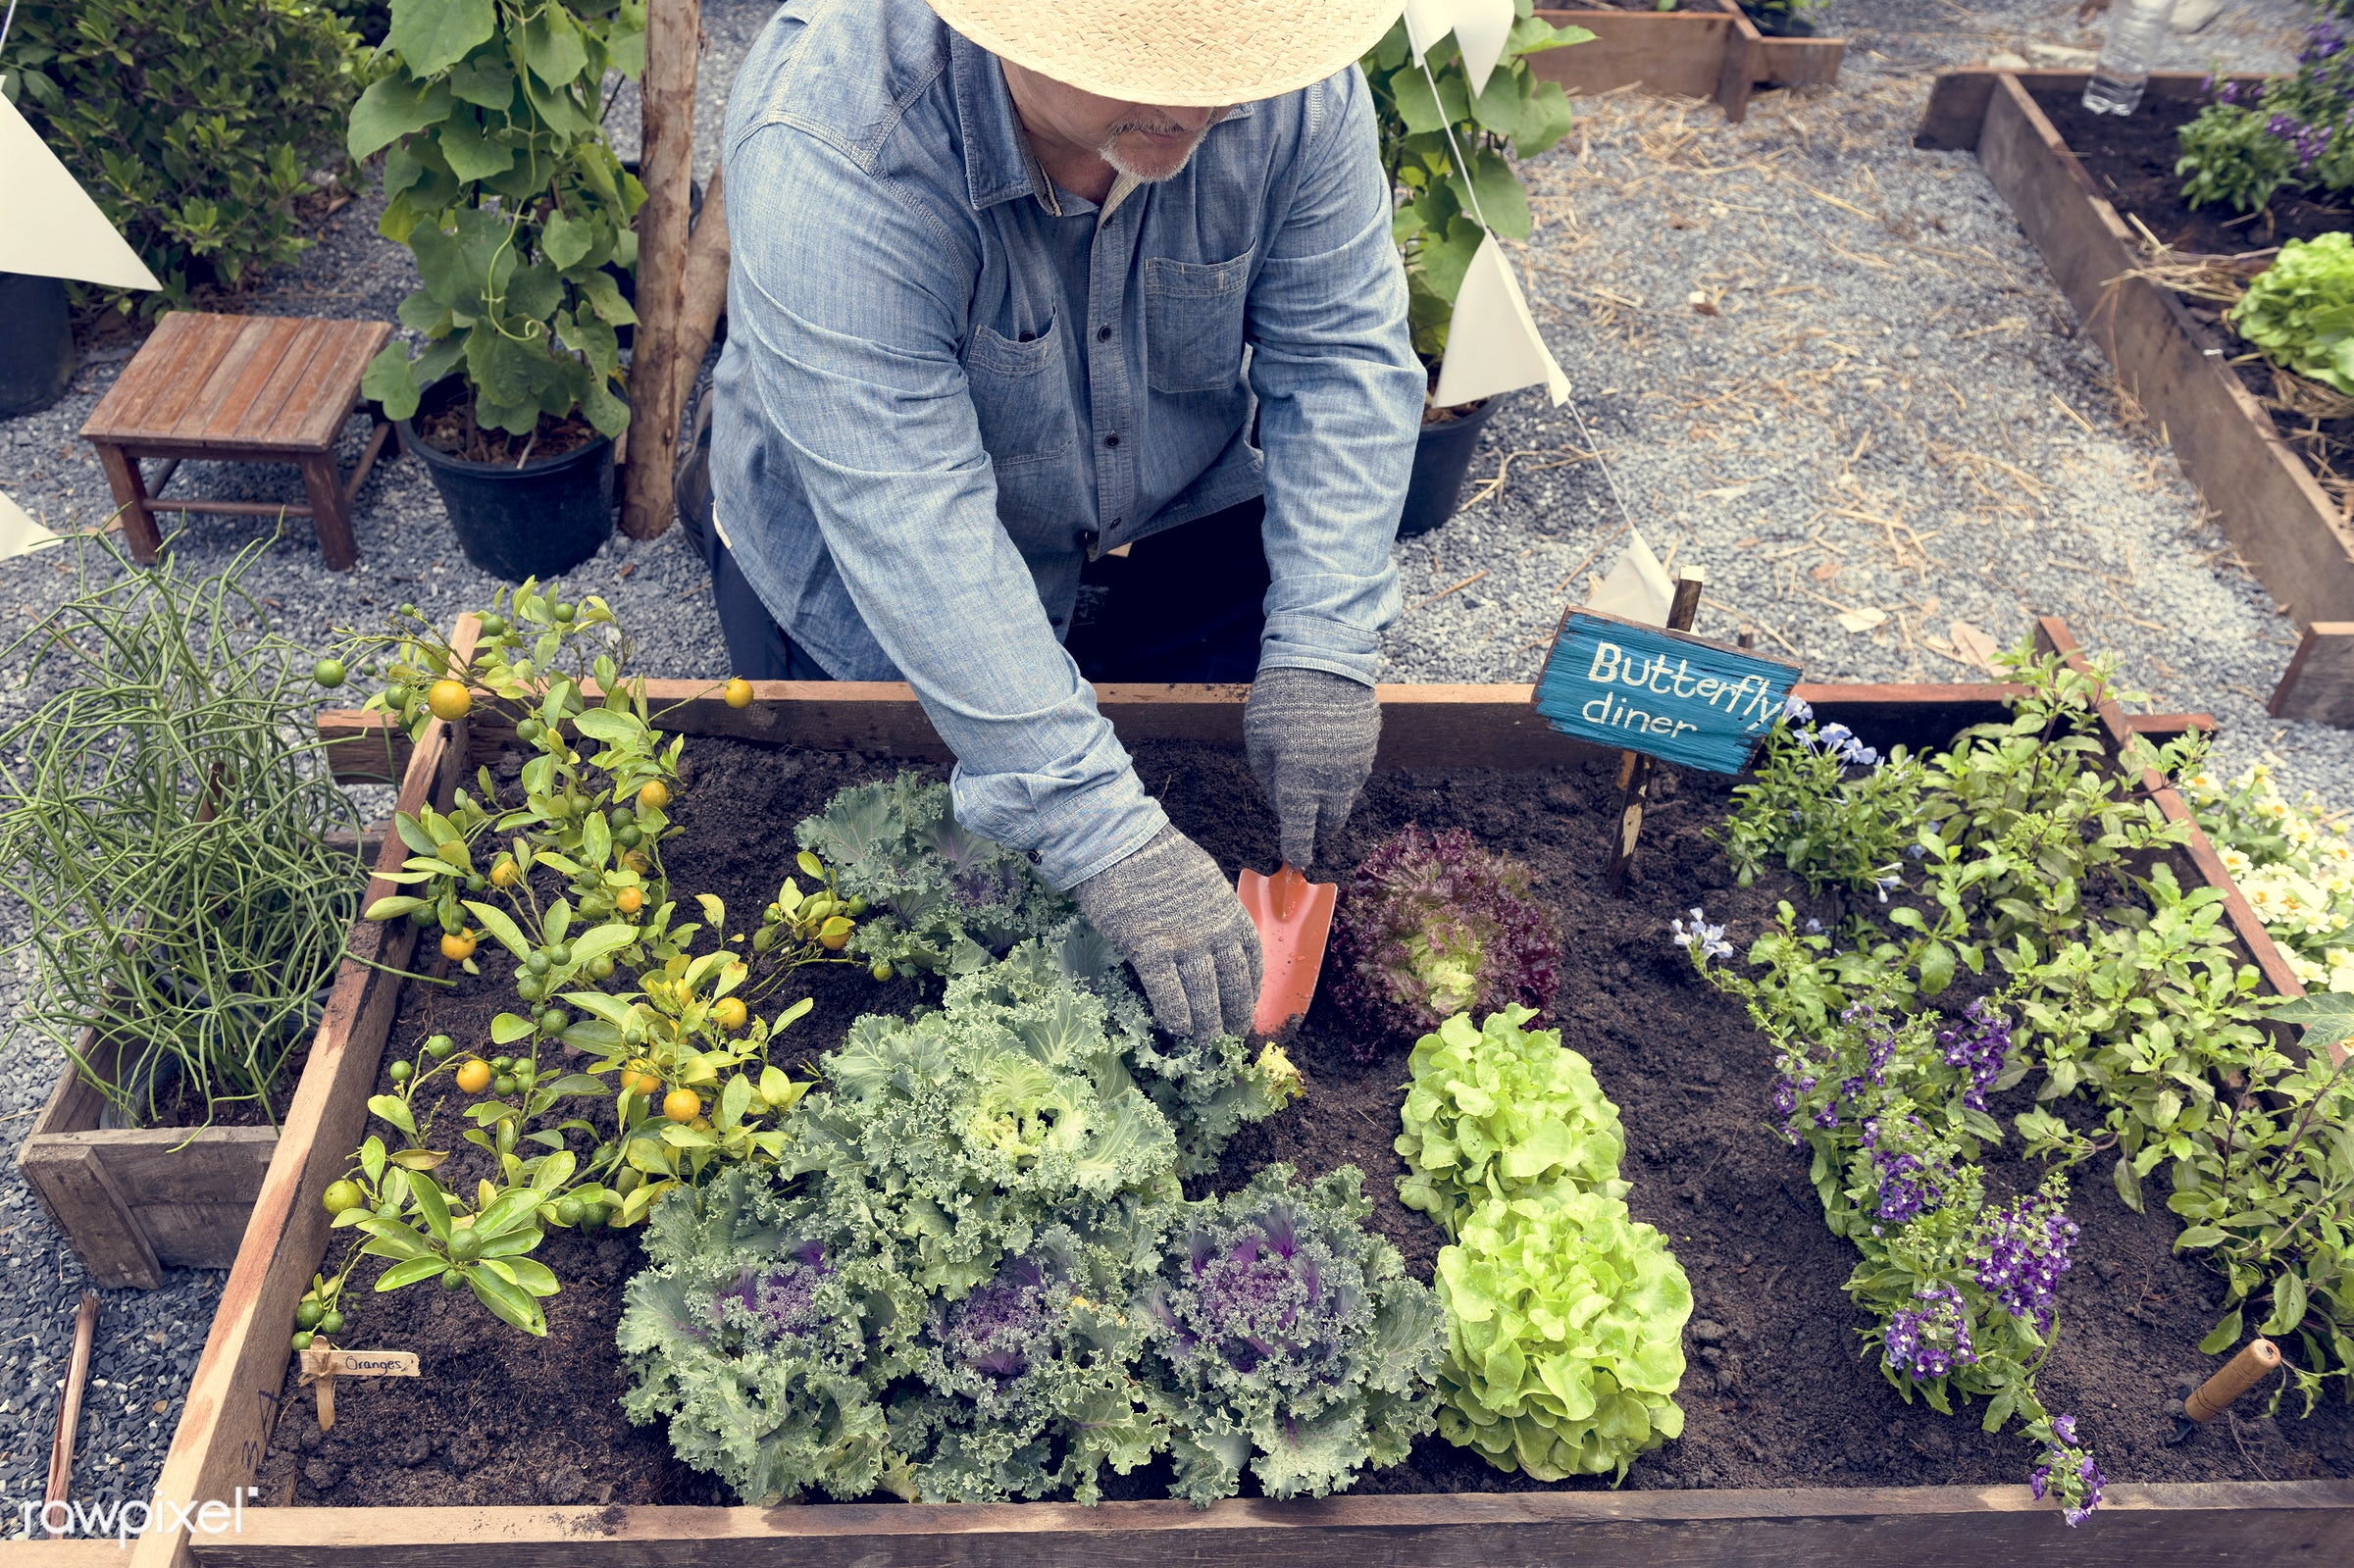 plant, nutritious, tomato, farmer, fresh, lettuce, healthy eating, flower, man, green, togetherness, agriculture, planting,...